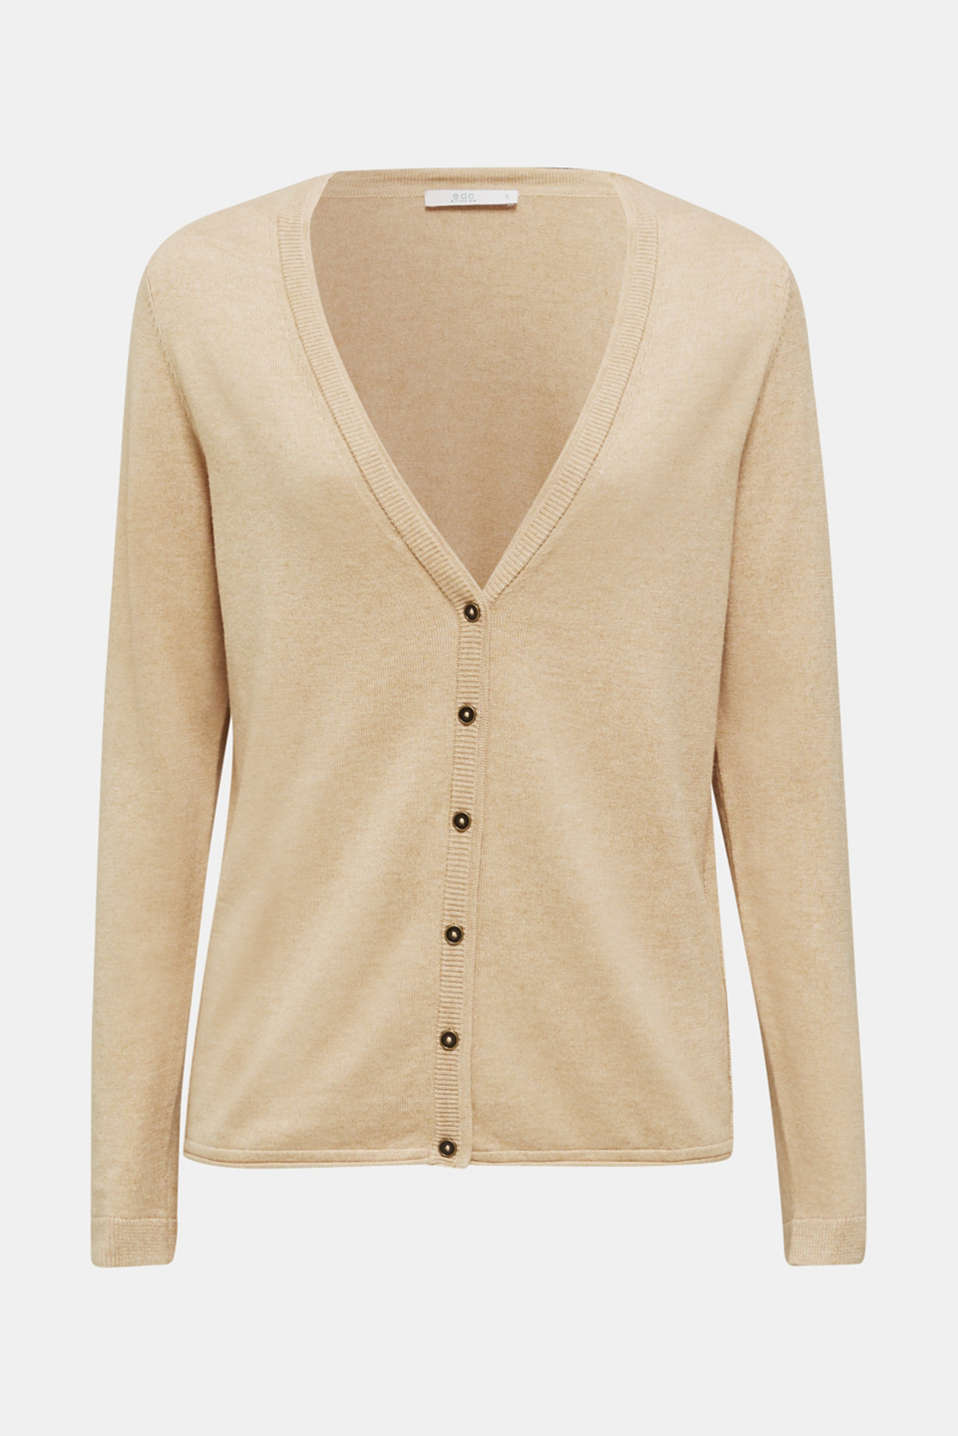 Fine-knit blended cotton cardigan, LIGHT BEIGE 5, detail image number 5